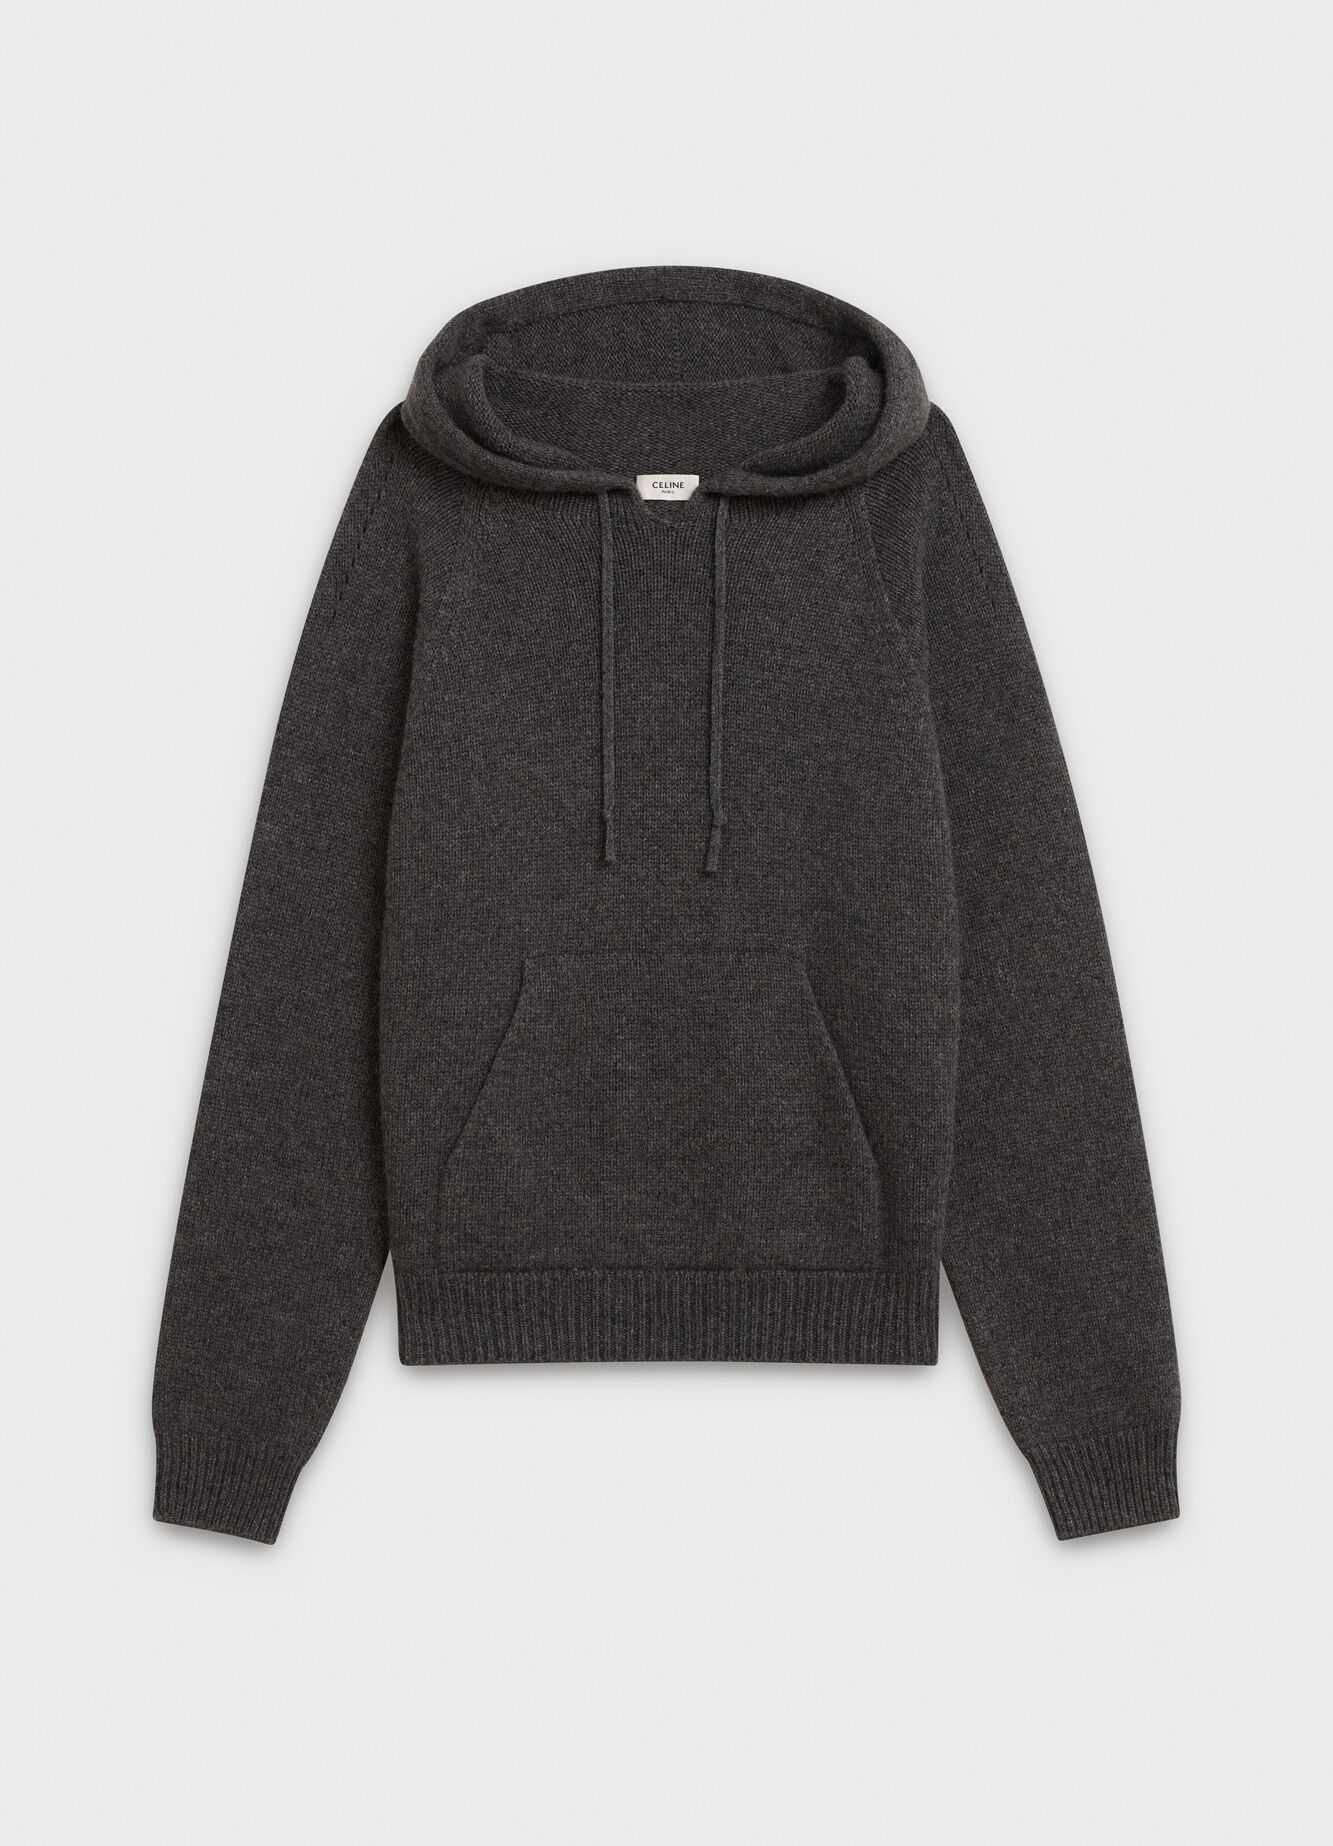 CELINE HOODED SWEATER IN CASHMERE